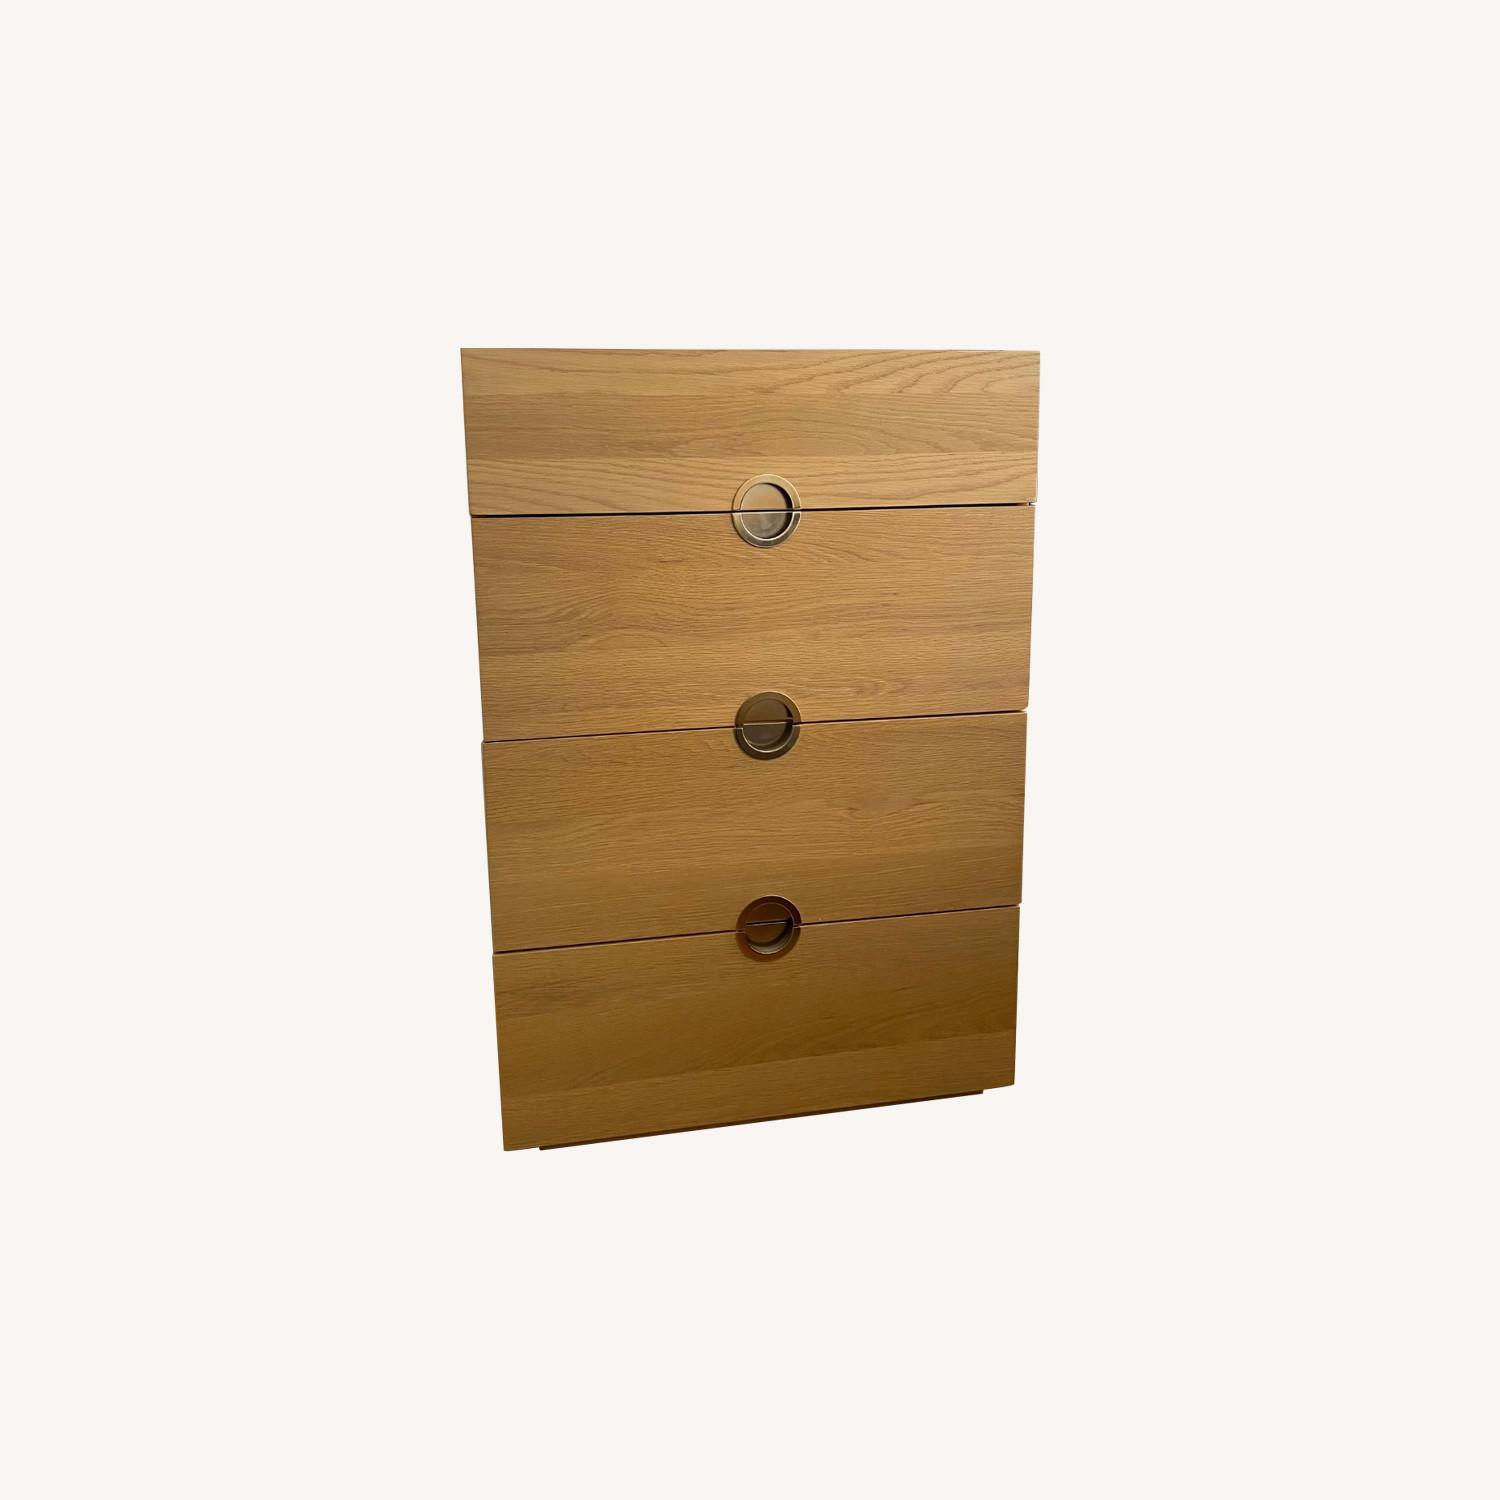 CB2 Wood Dresser with Gold Accents - image-0